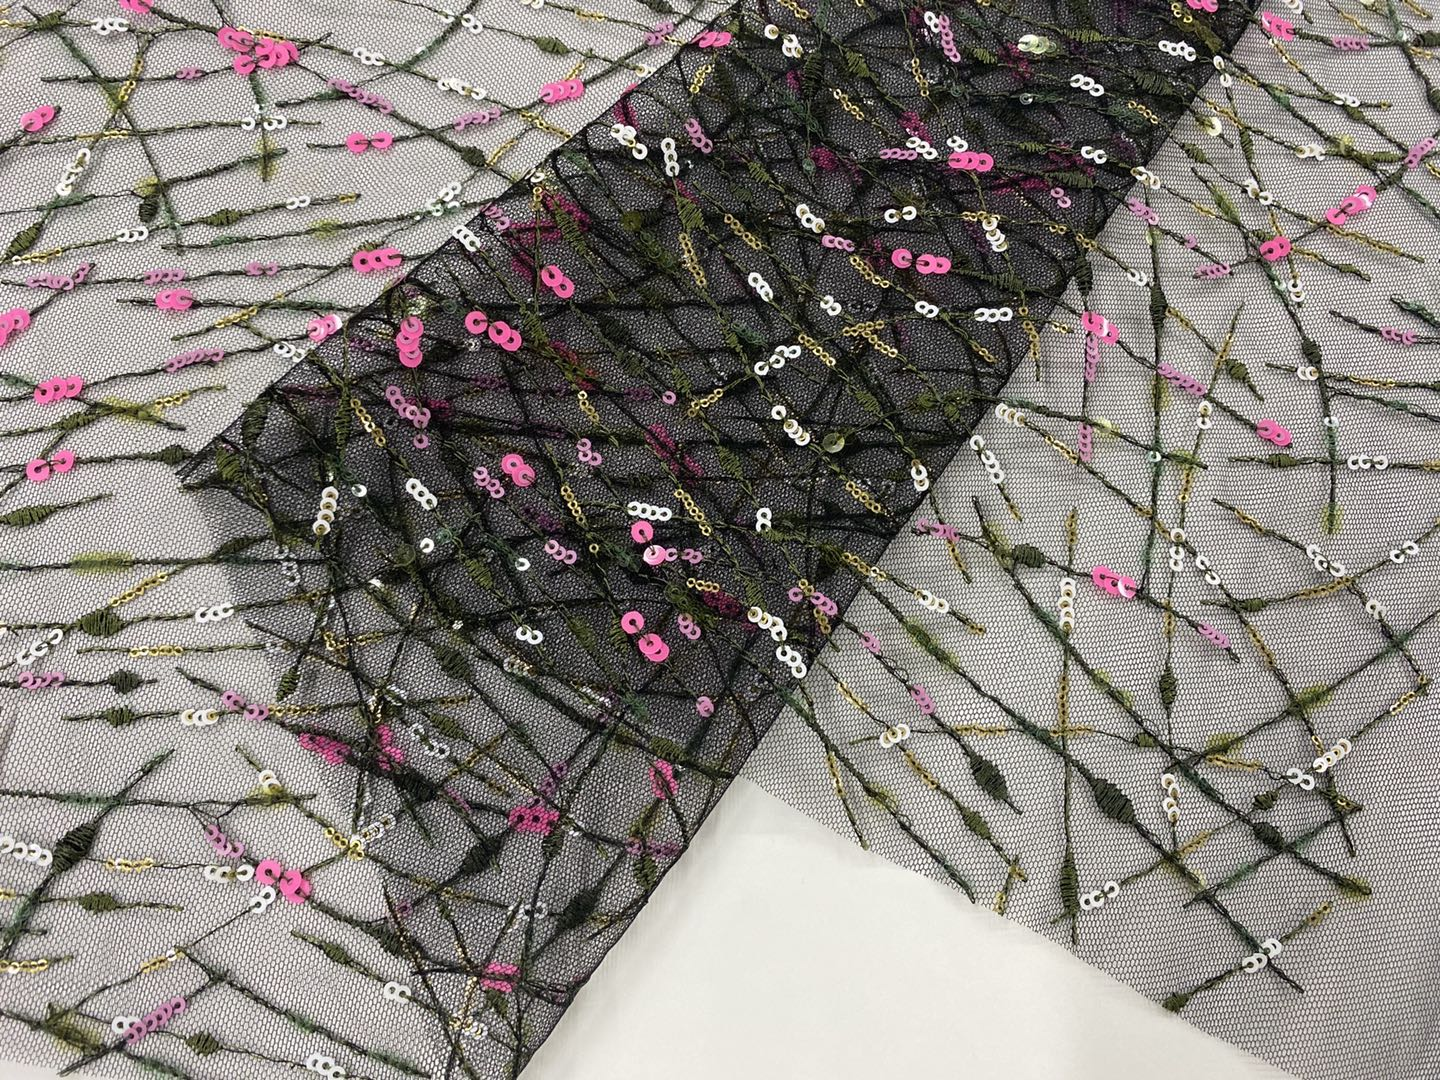 Fashion Embroidery Fabric Of Spring